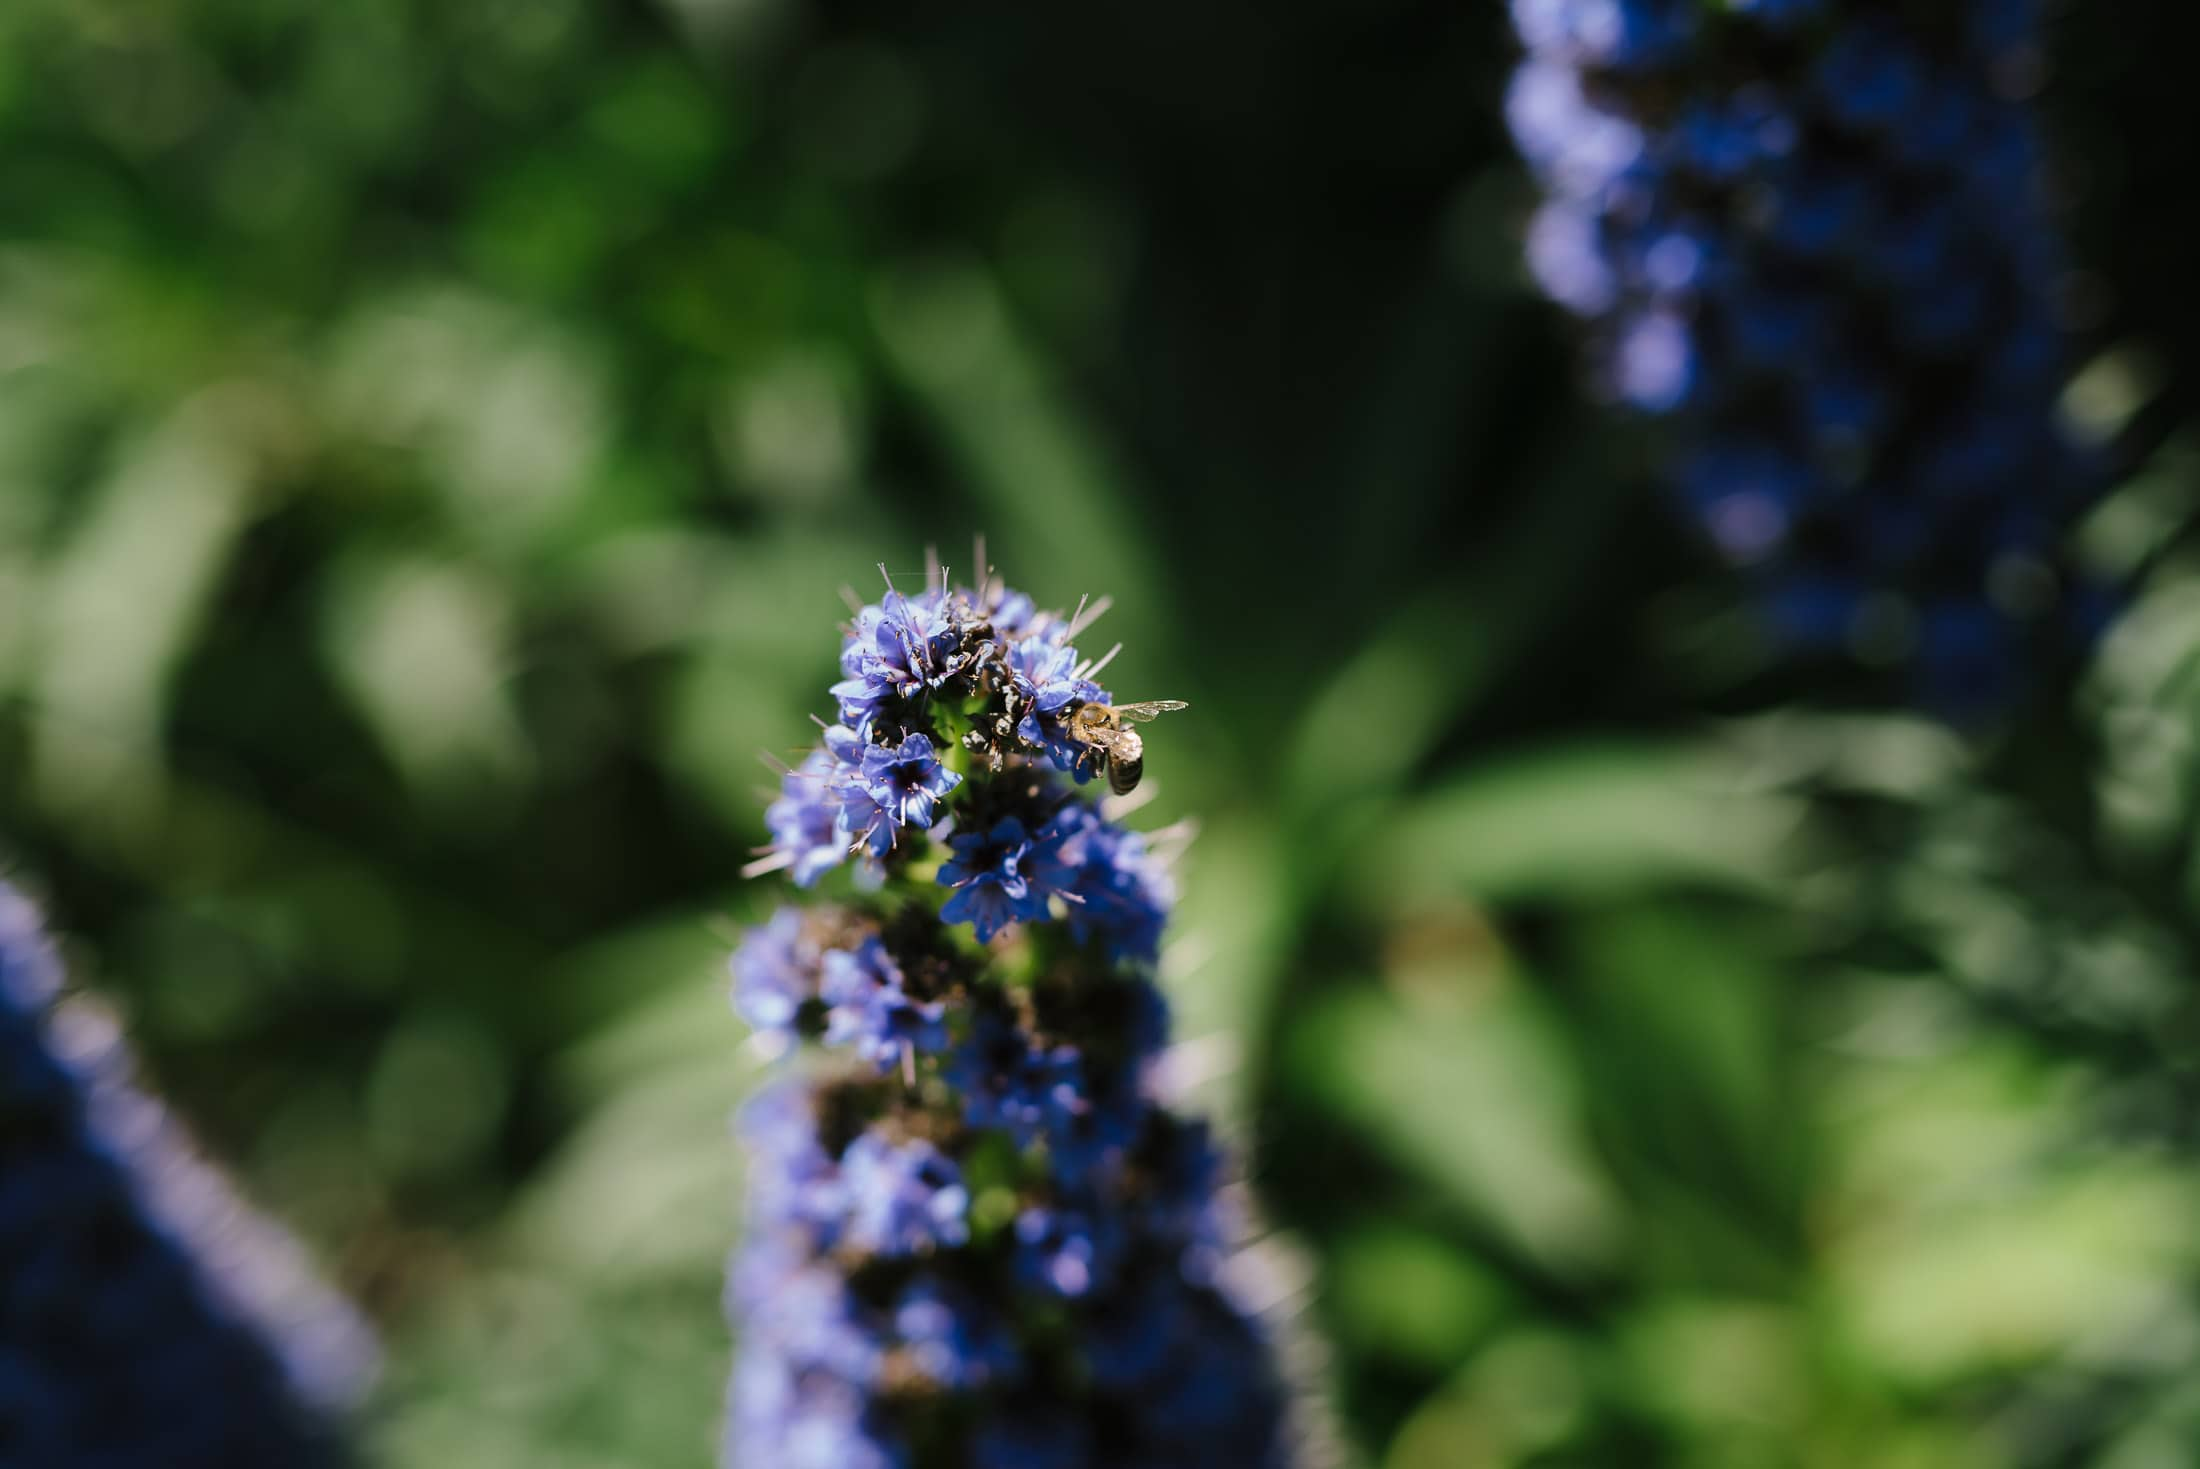 Detail of Flower with Bee